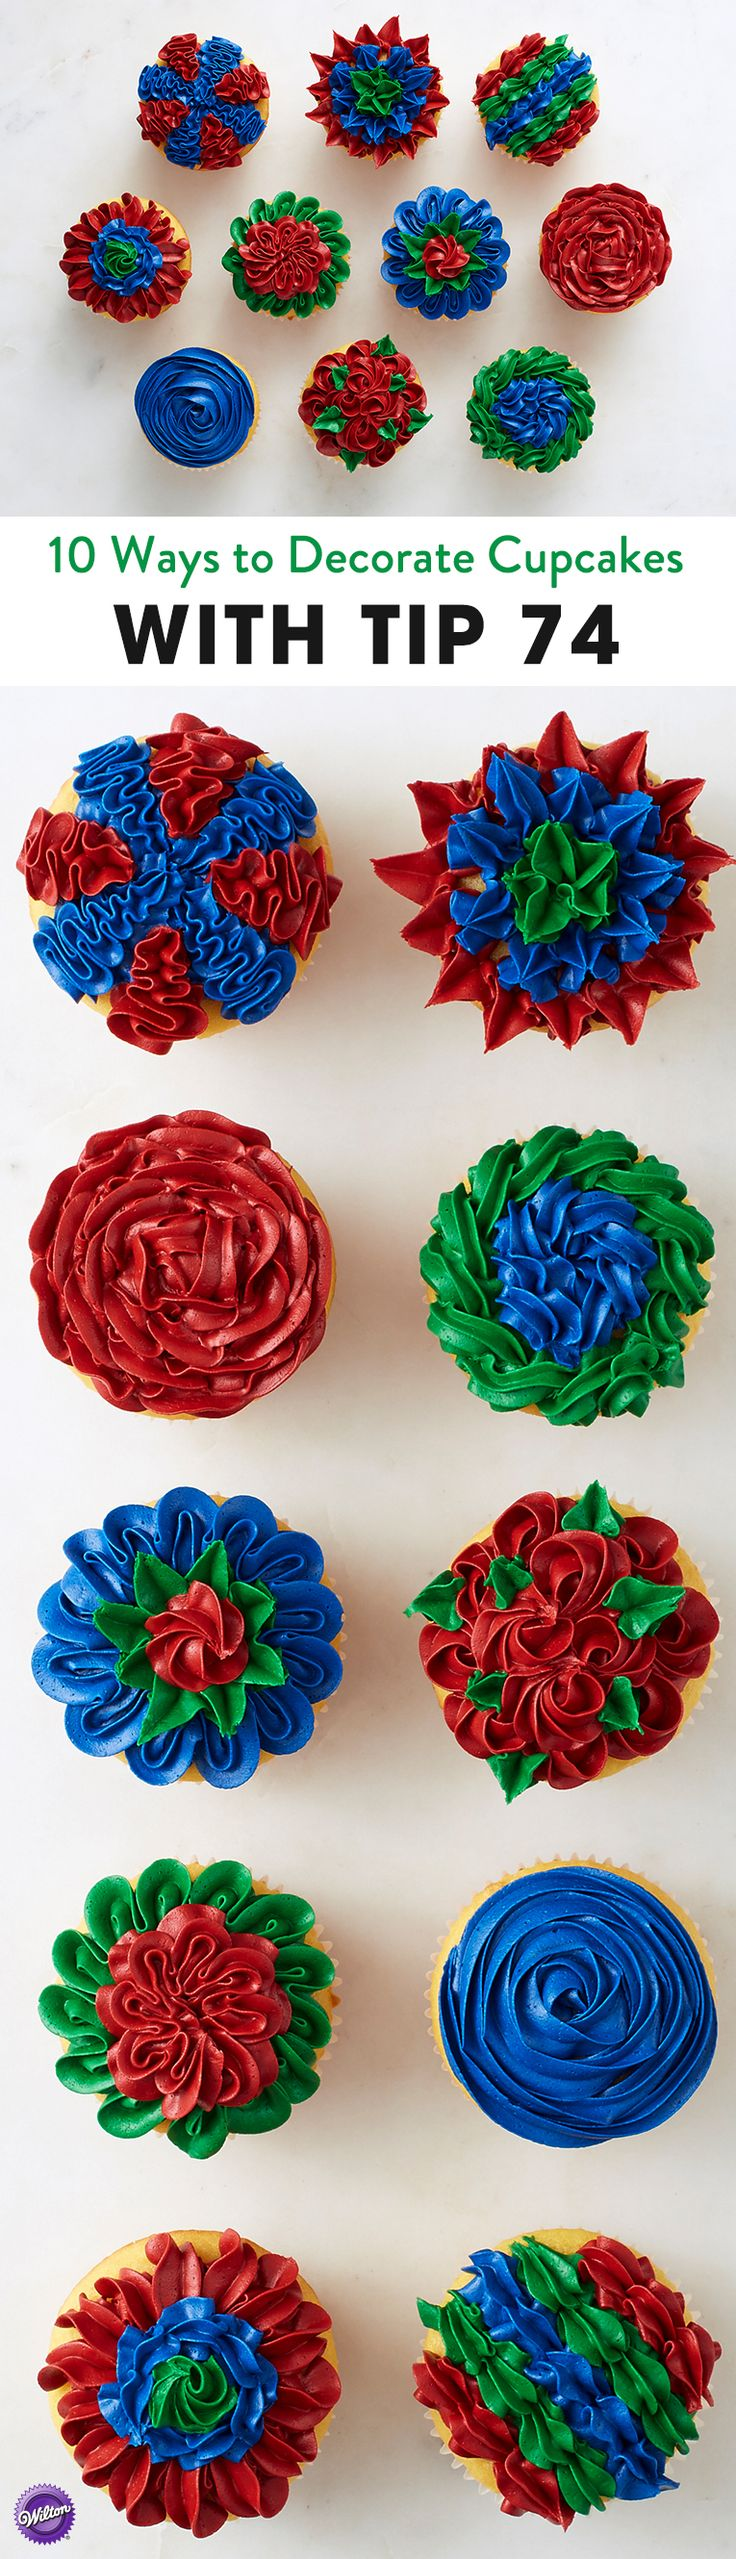 Best 25 Wilton decorating tips ideas on Pinterest Icing tips